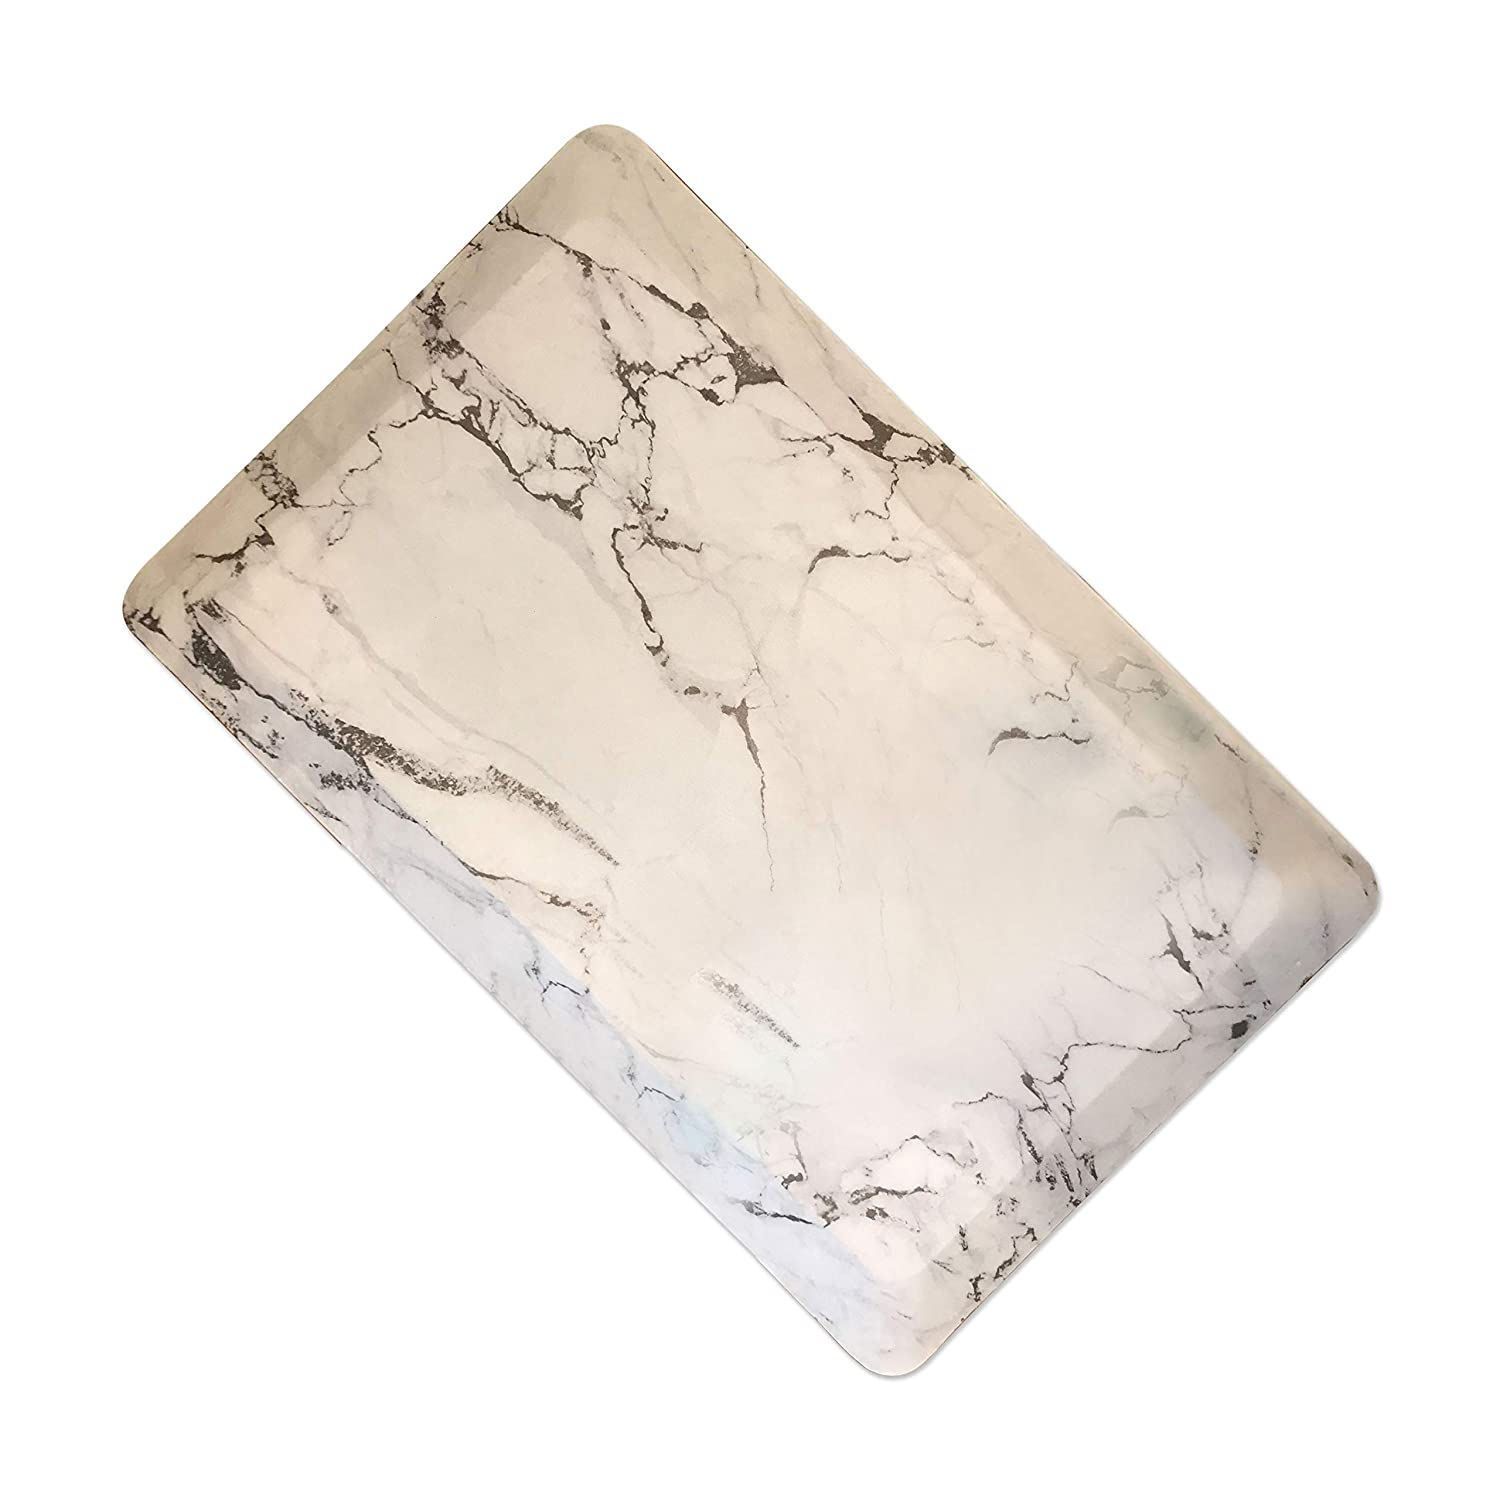 Buy Emeril Lagasse Cook N Comfort Air Kitchen Mat Comfortable Polyvinyl Foam Anti Fatigue Kitchen Mat Calacatta Marble Online At Low Prices In India Amazon In